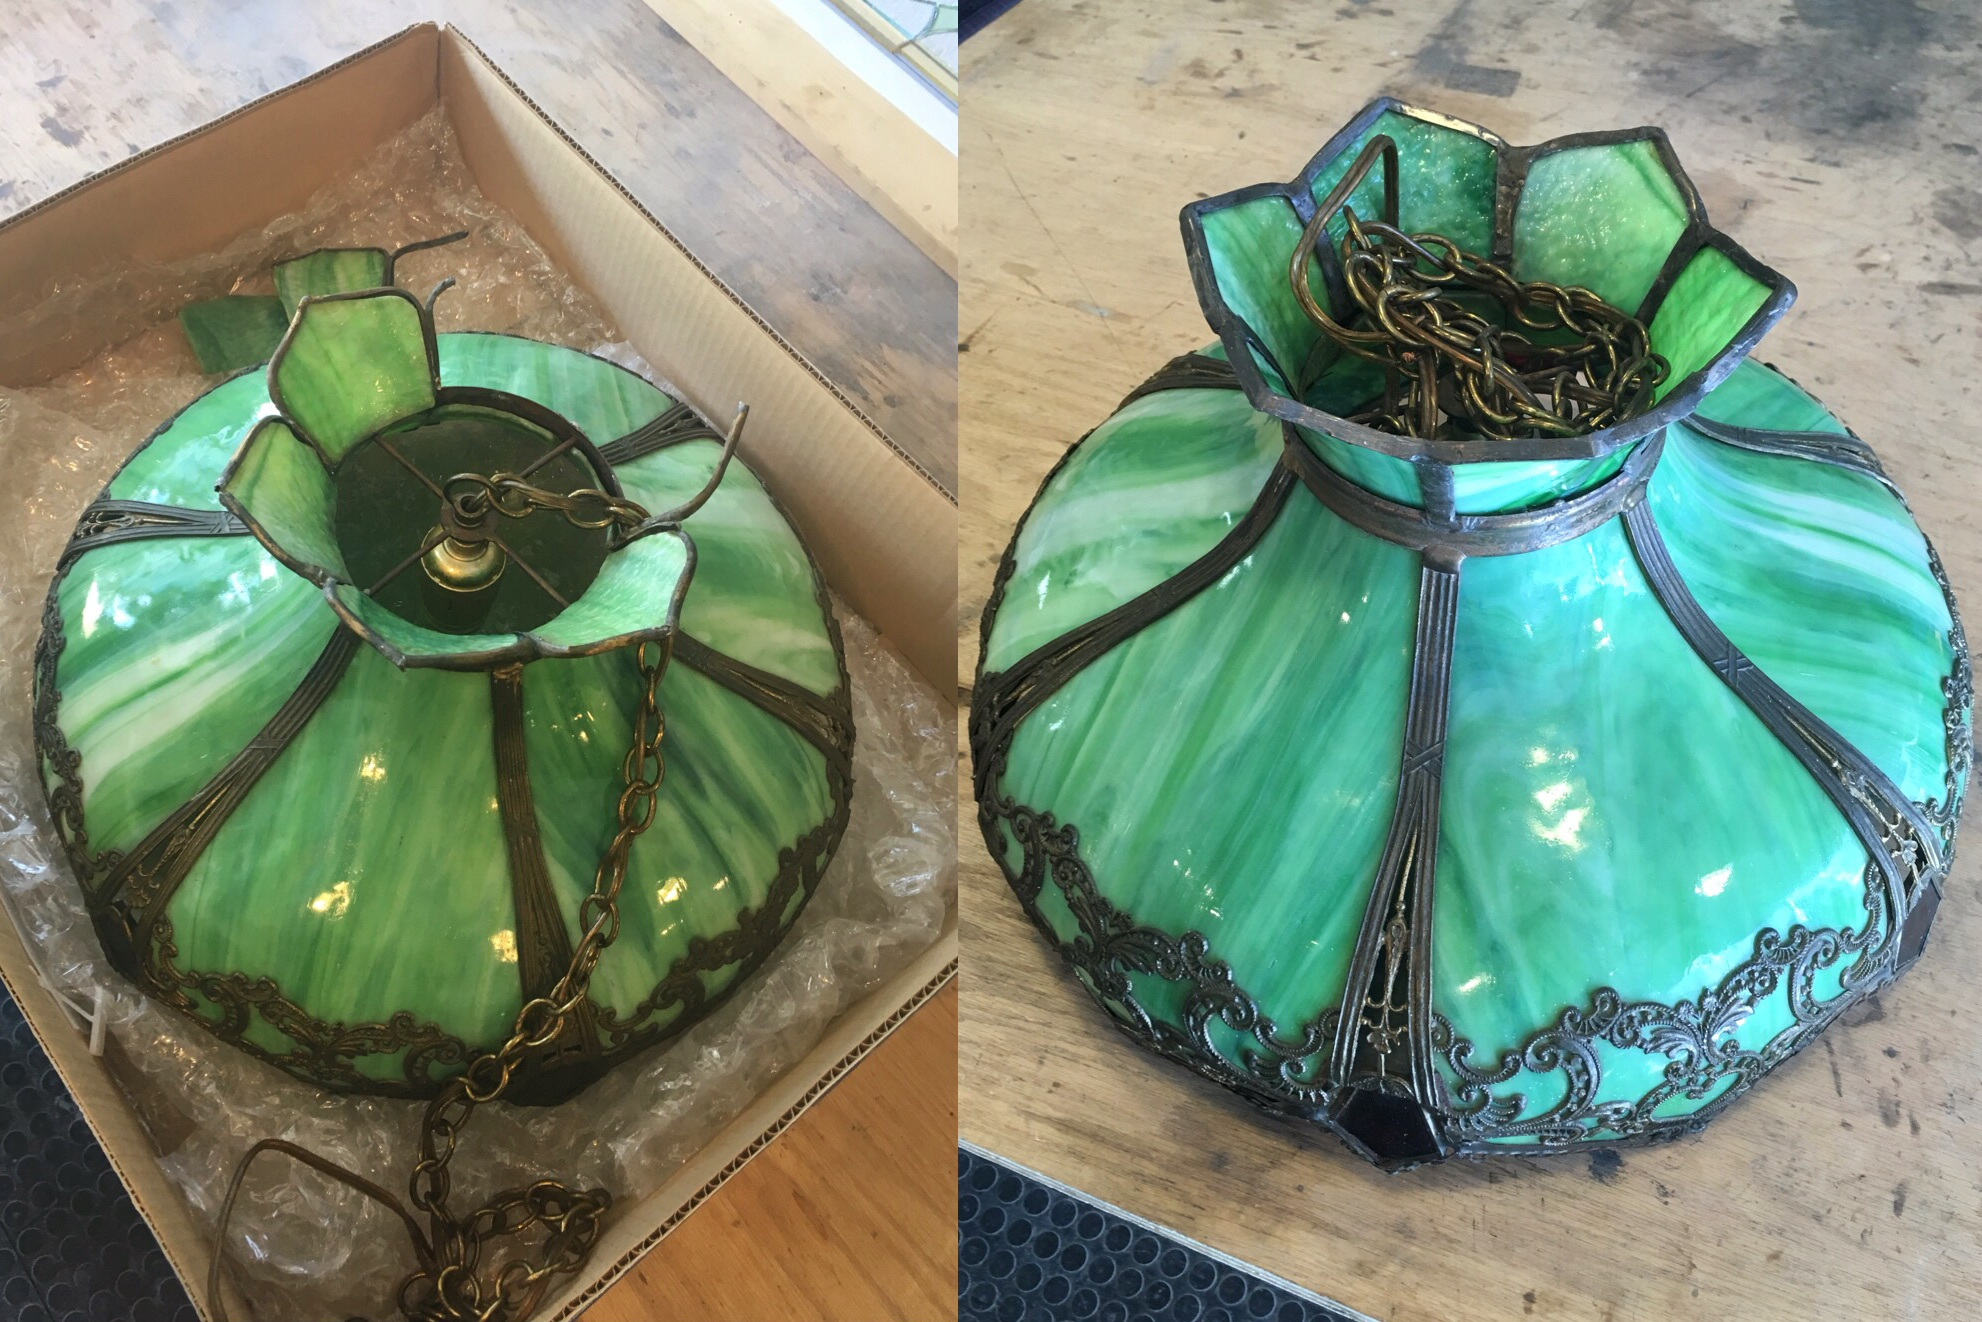 stained glass leaded glass design legacy glass studios menlo park bay area california glass lamp repair before and after.jpg